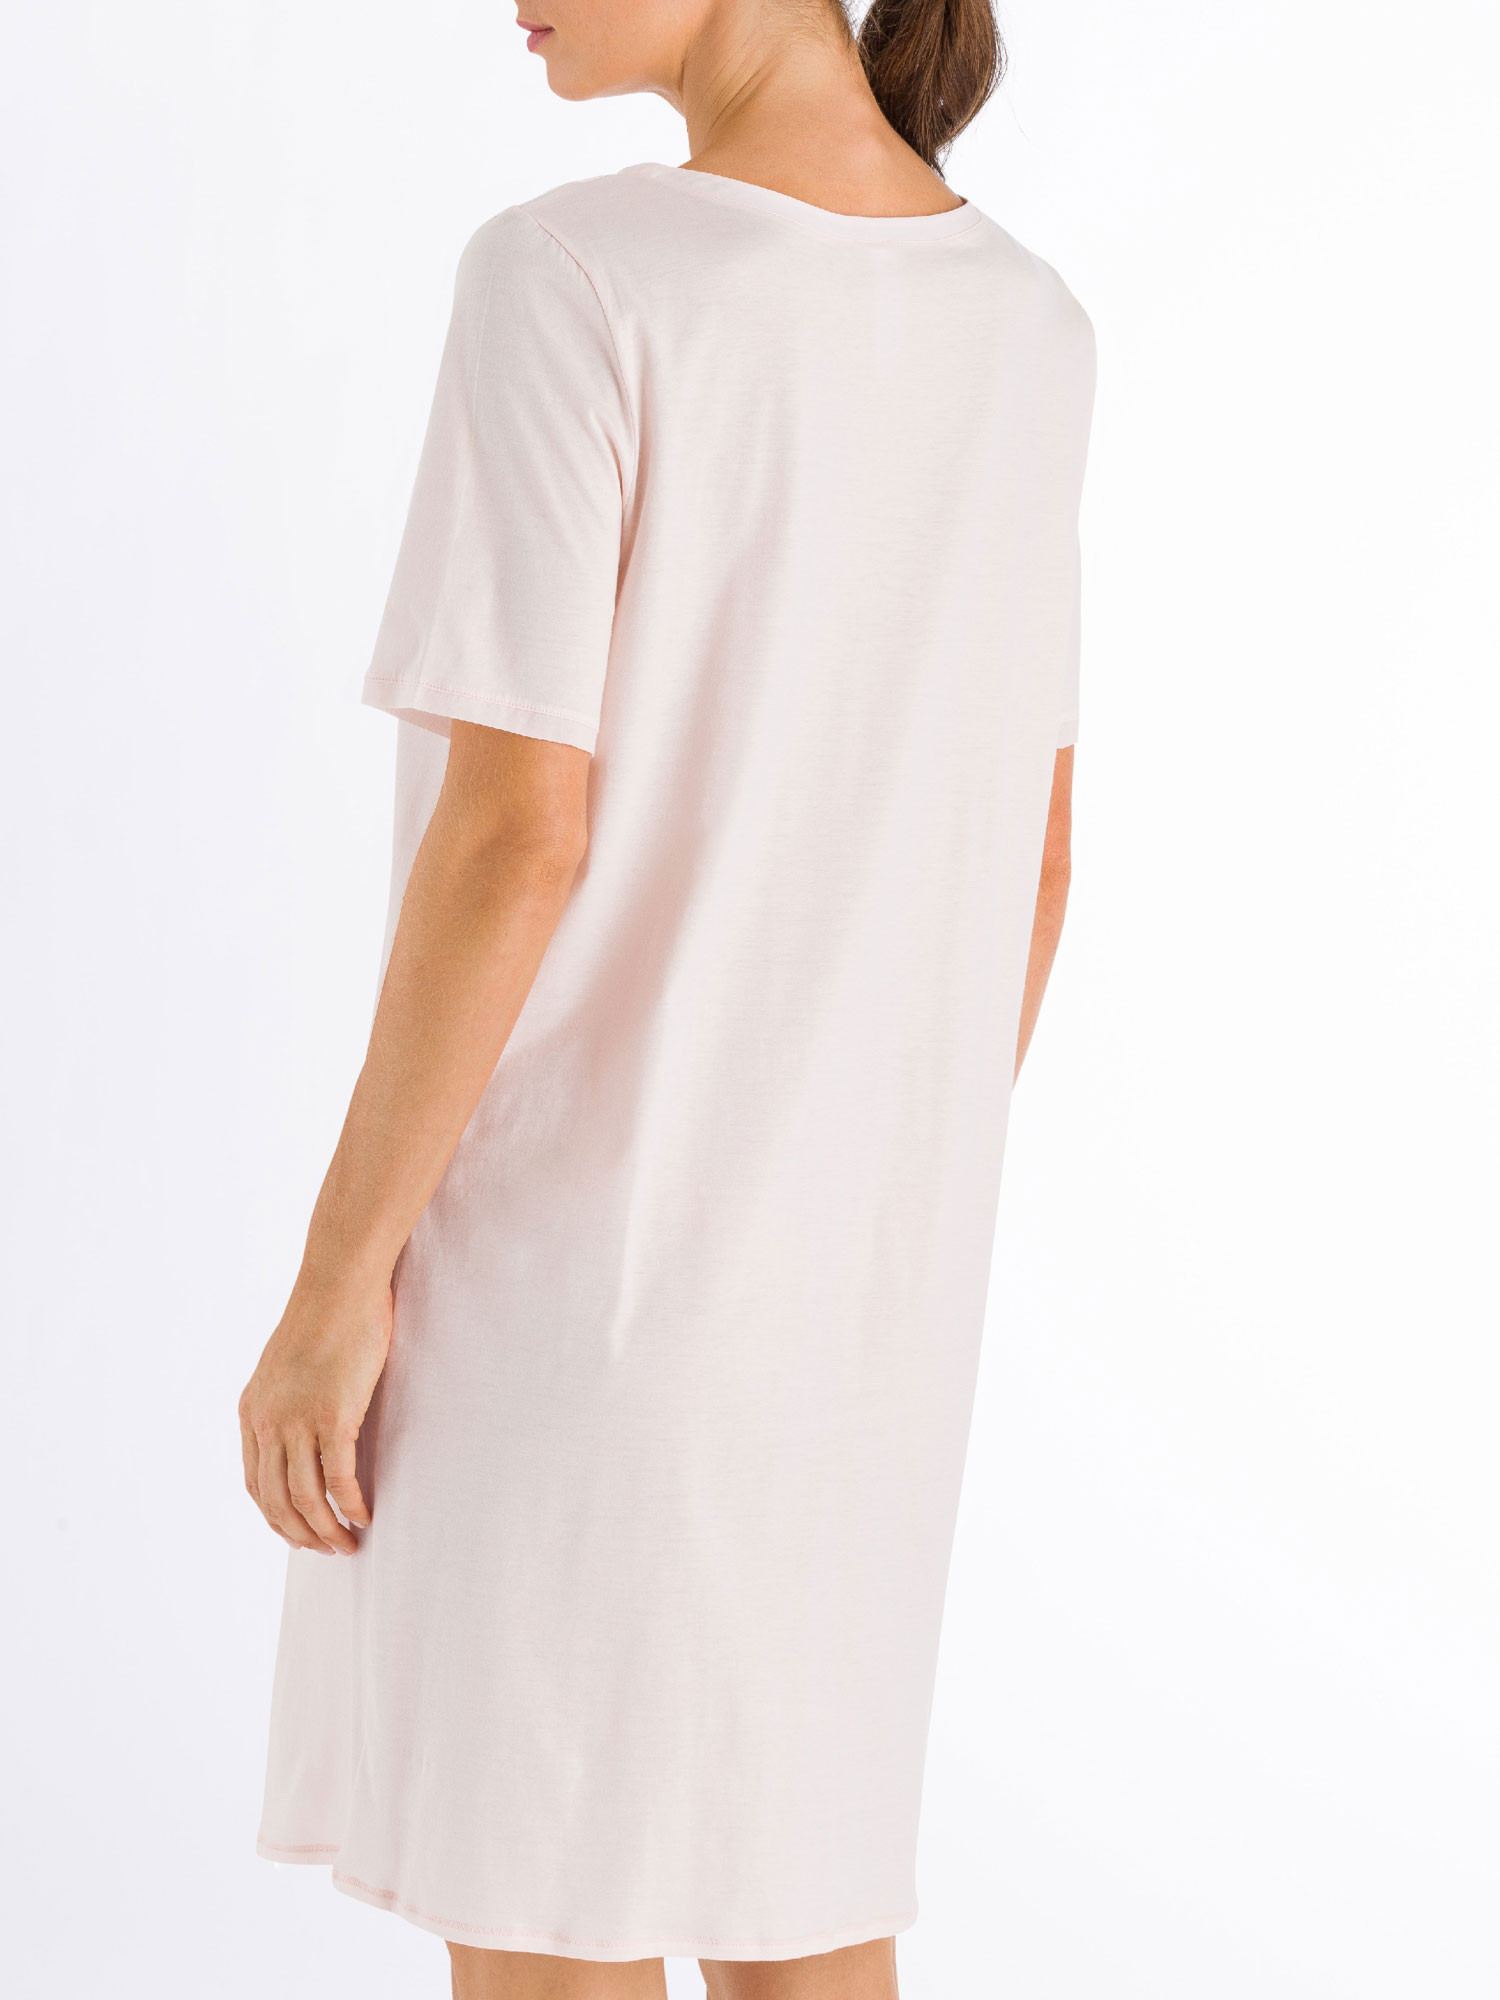 NIGHTDRESS COTTON DELUXE NIGHT